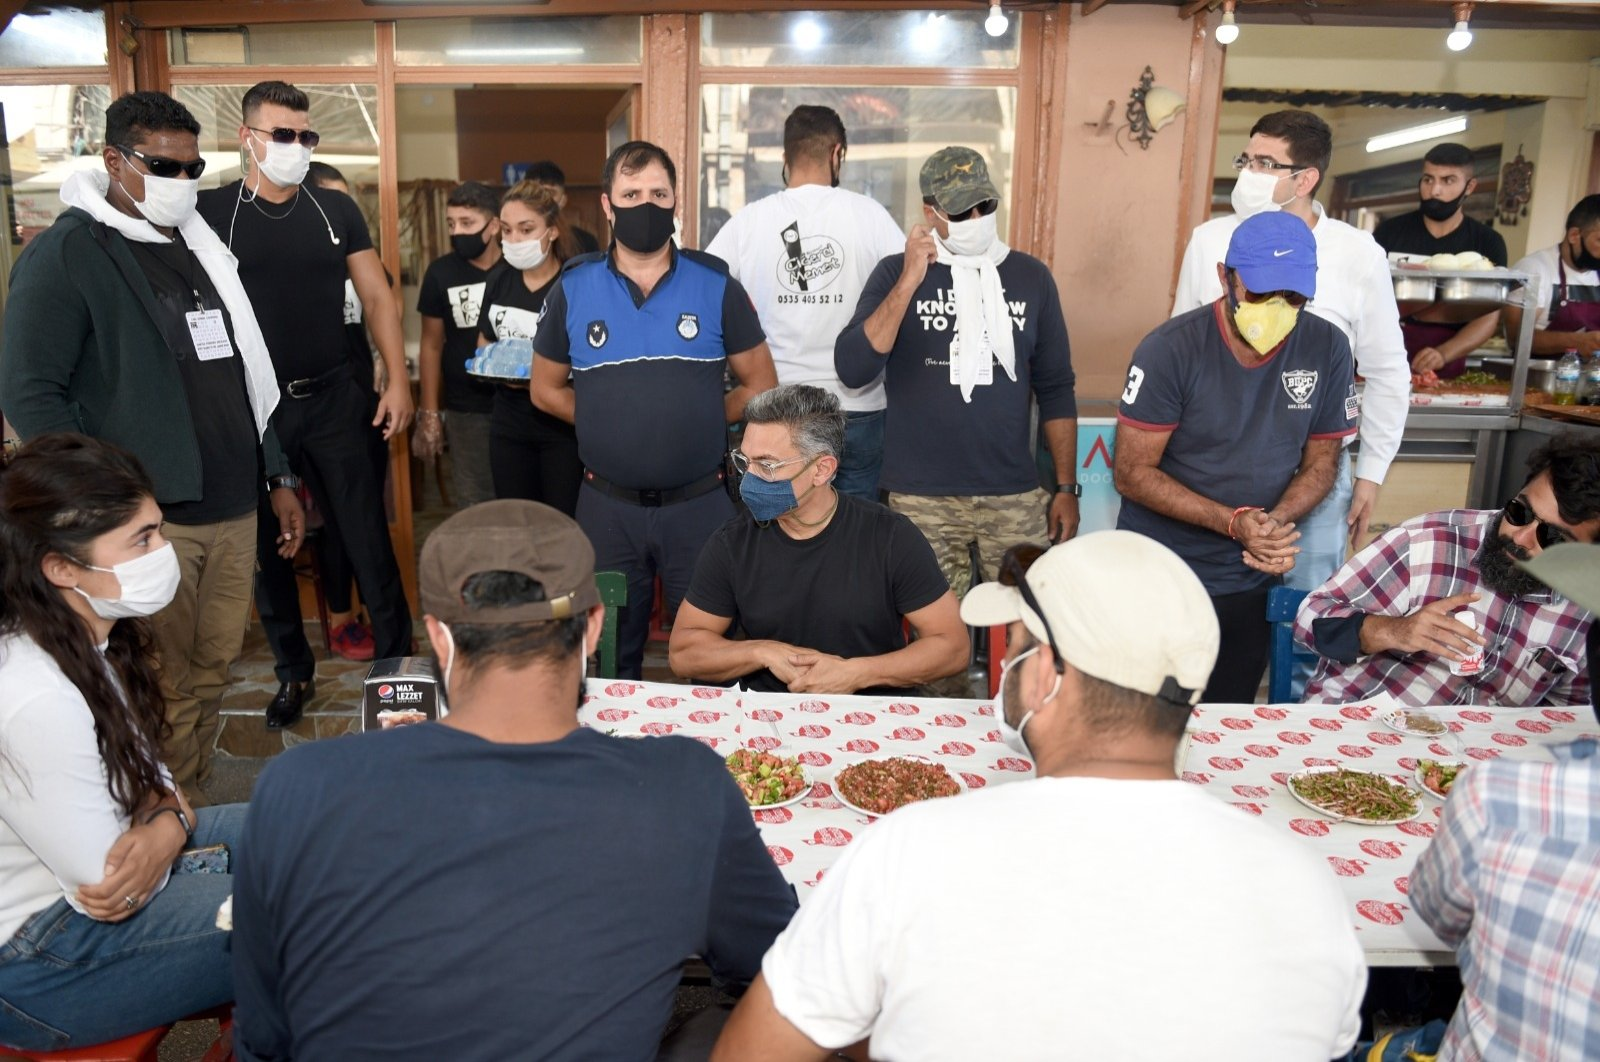 Bollywood star Aamir Khan, surrounded by his entourage, fans and officials, sits at a kebab restaurant in Adana, southern Turkey, Aug. 12, 2020. (Seyhan Municipality via AA)